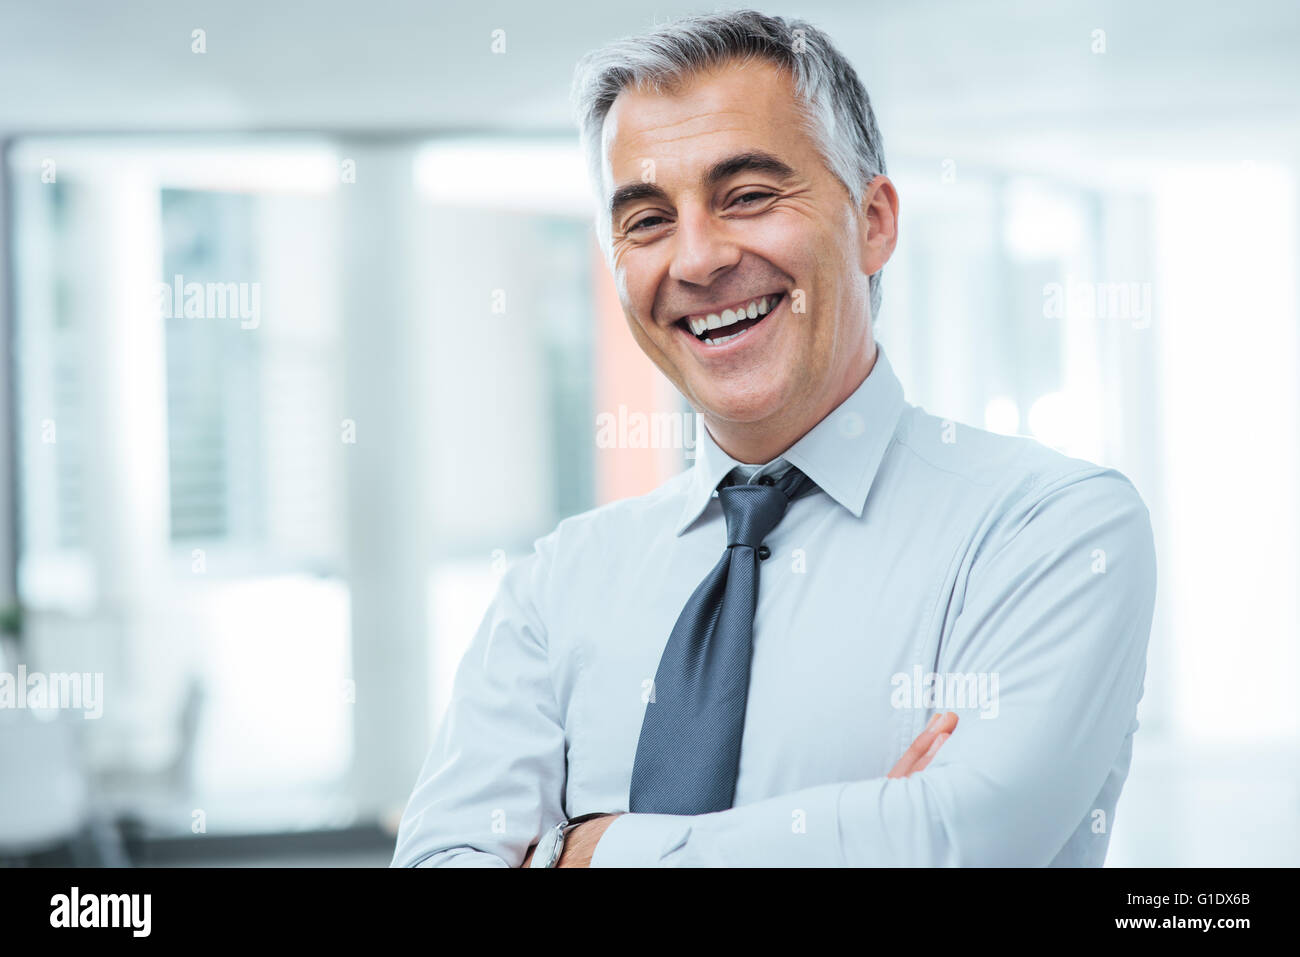 Successful businessman posing with crossed arms and smiling at camera - Stock Image